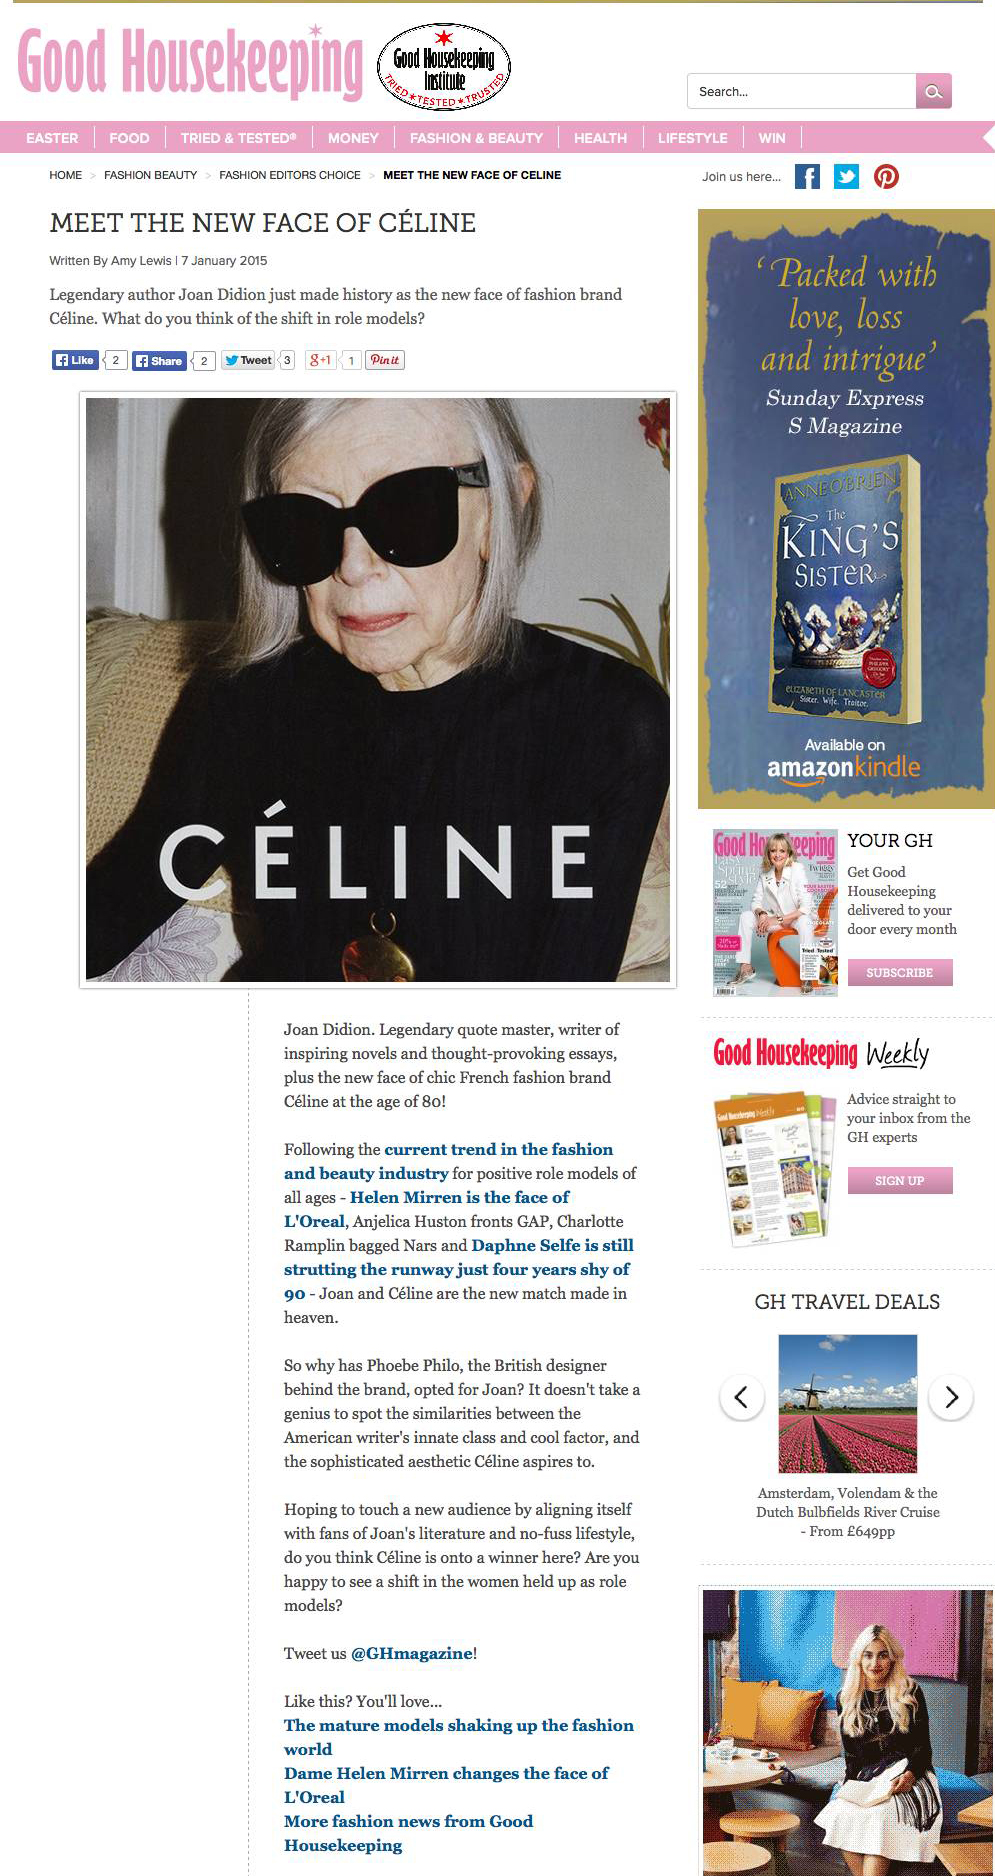 Joan_Didion_the_new_face_of_Céline_-_Fashion_News_-_Good_Housekeeping_-_2015-03-17_22.12.43.png